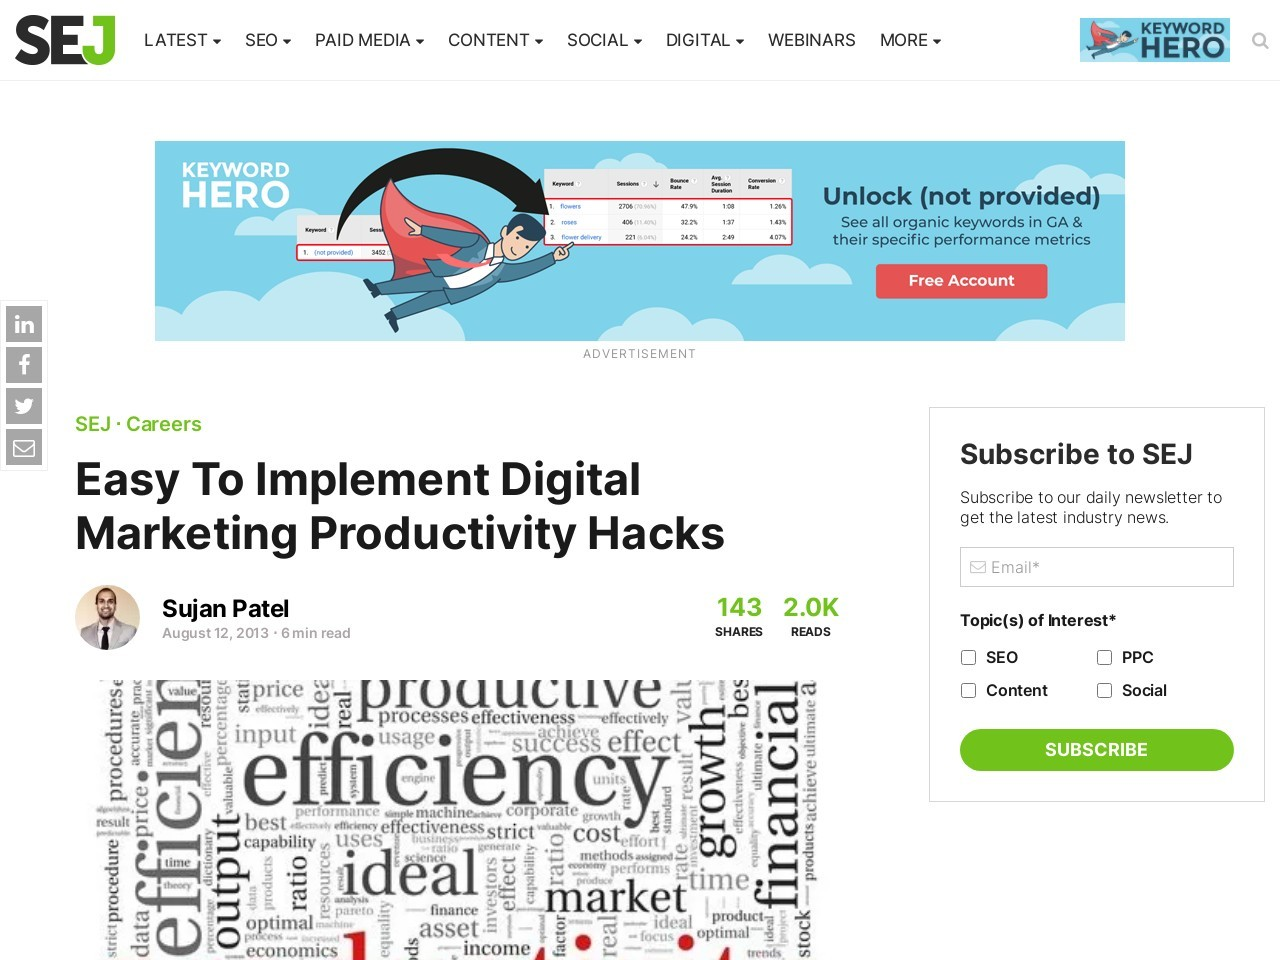 Easy To Implement Digital Marketing Productivity Hacks | Search …